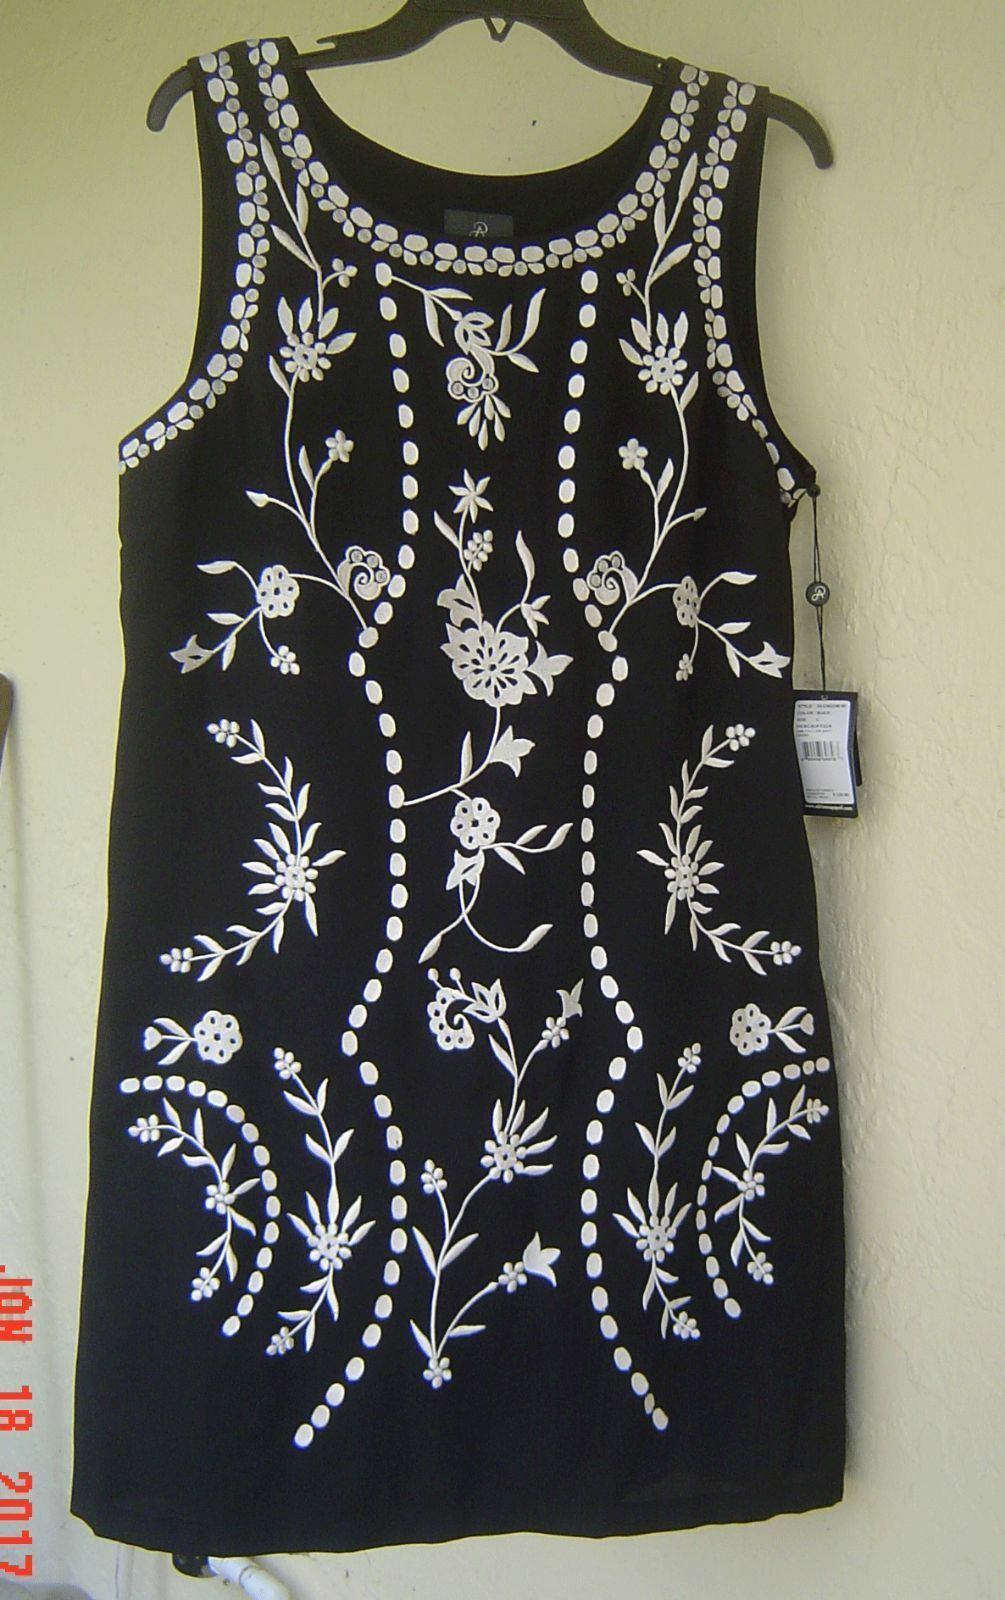 NWT ADRIANNA PAPELL BLACK FLORAL EMBROIDERED SHIFT DRESS SIZE L $120 image 3